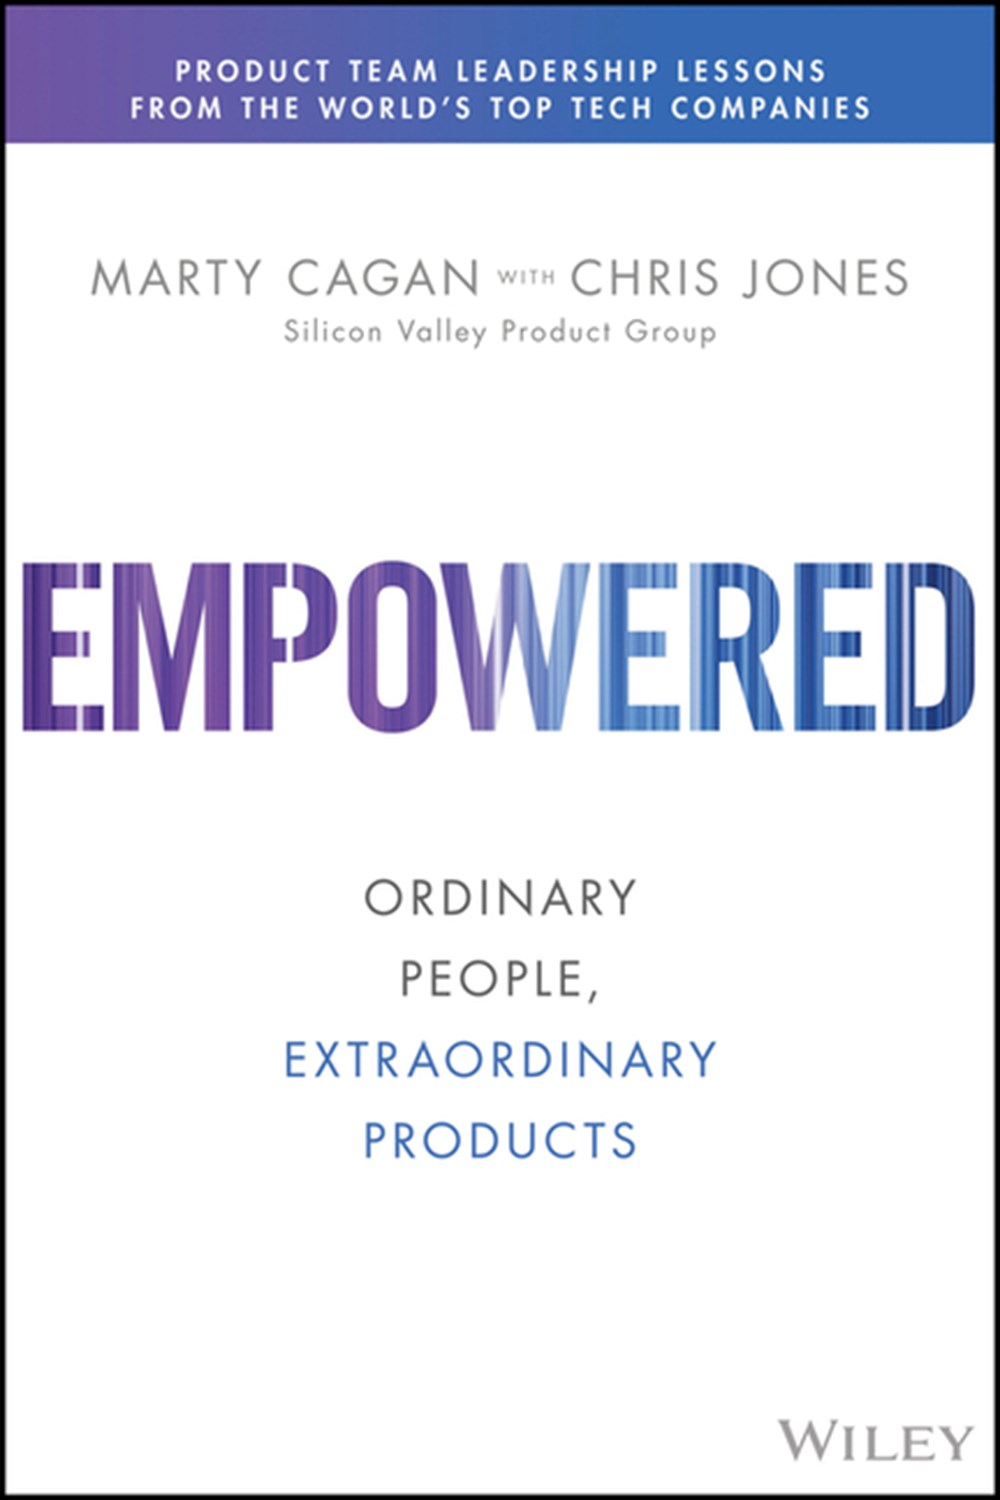 Empowered Ordinary People, Extraordinary Products